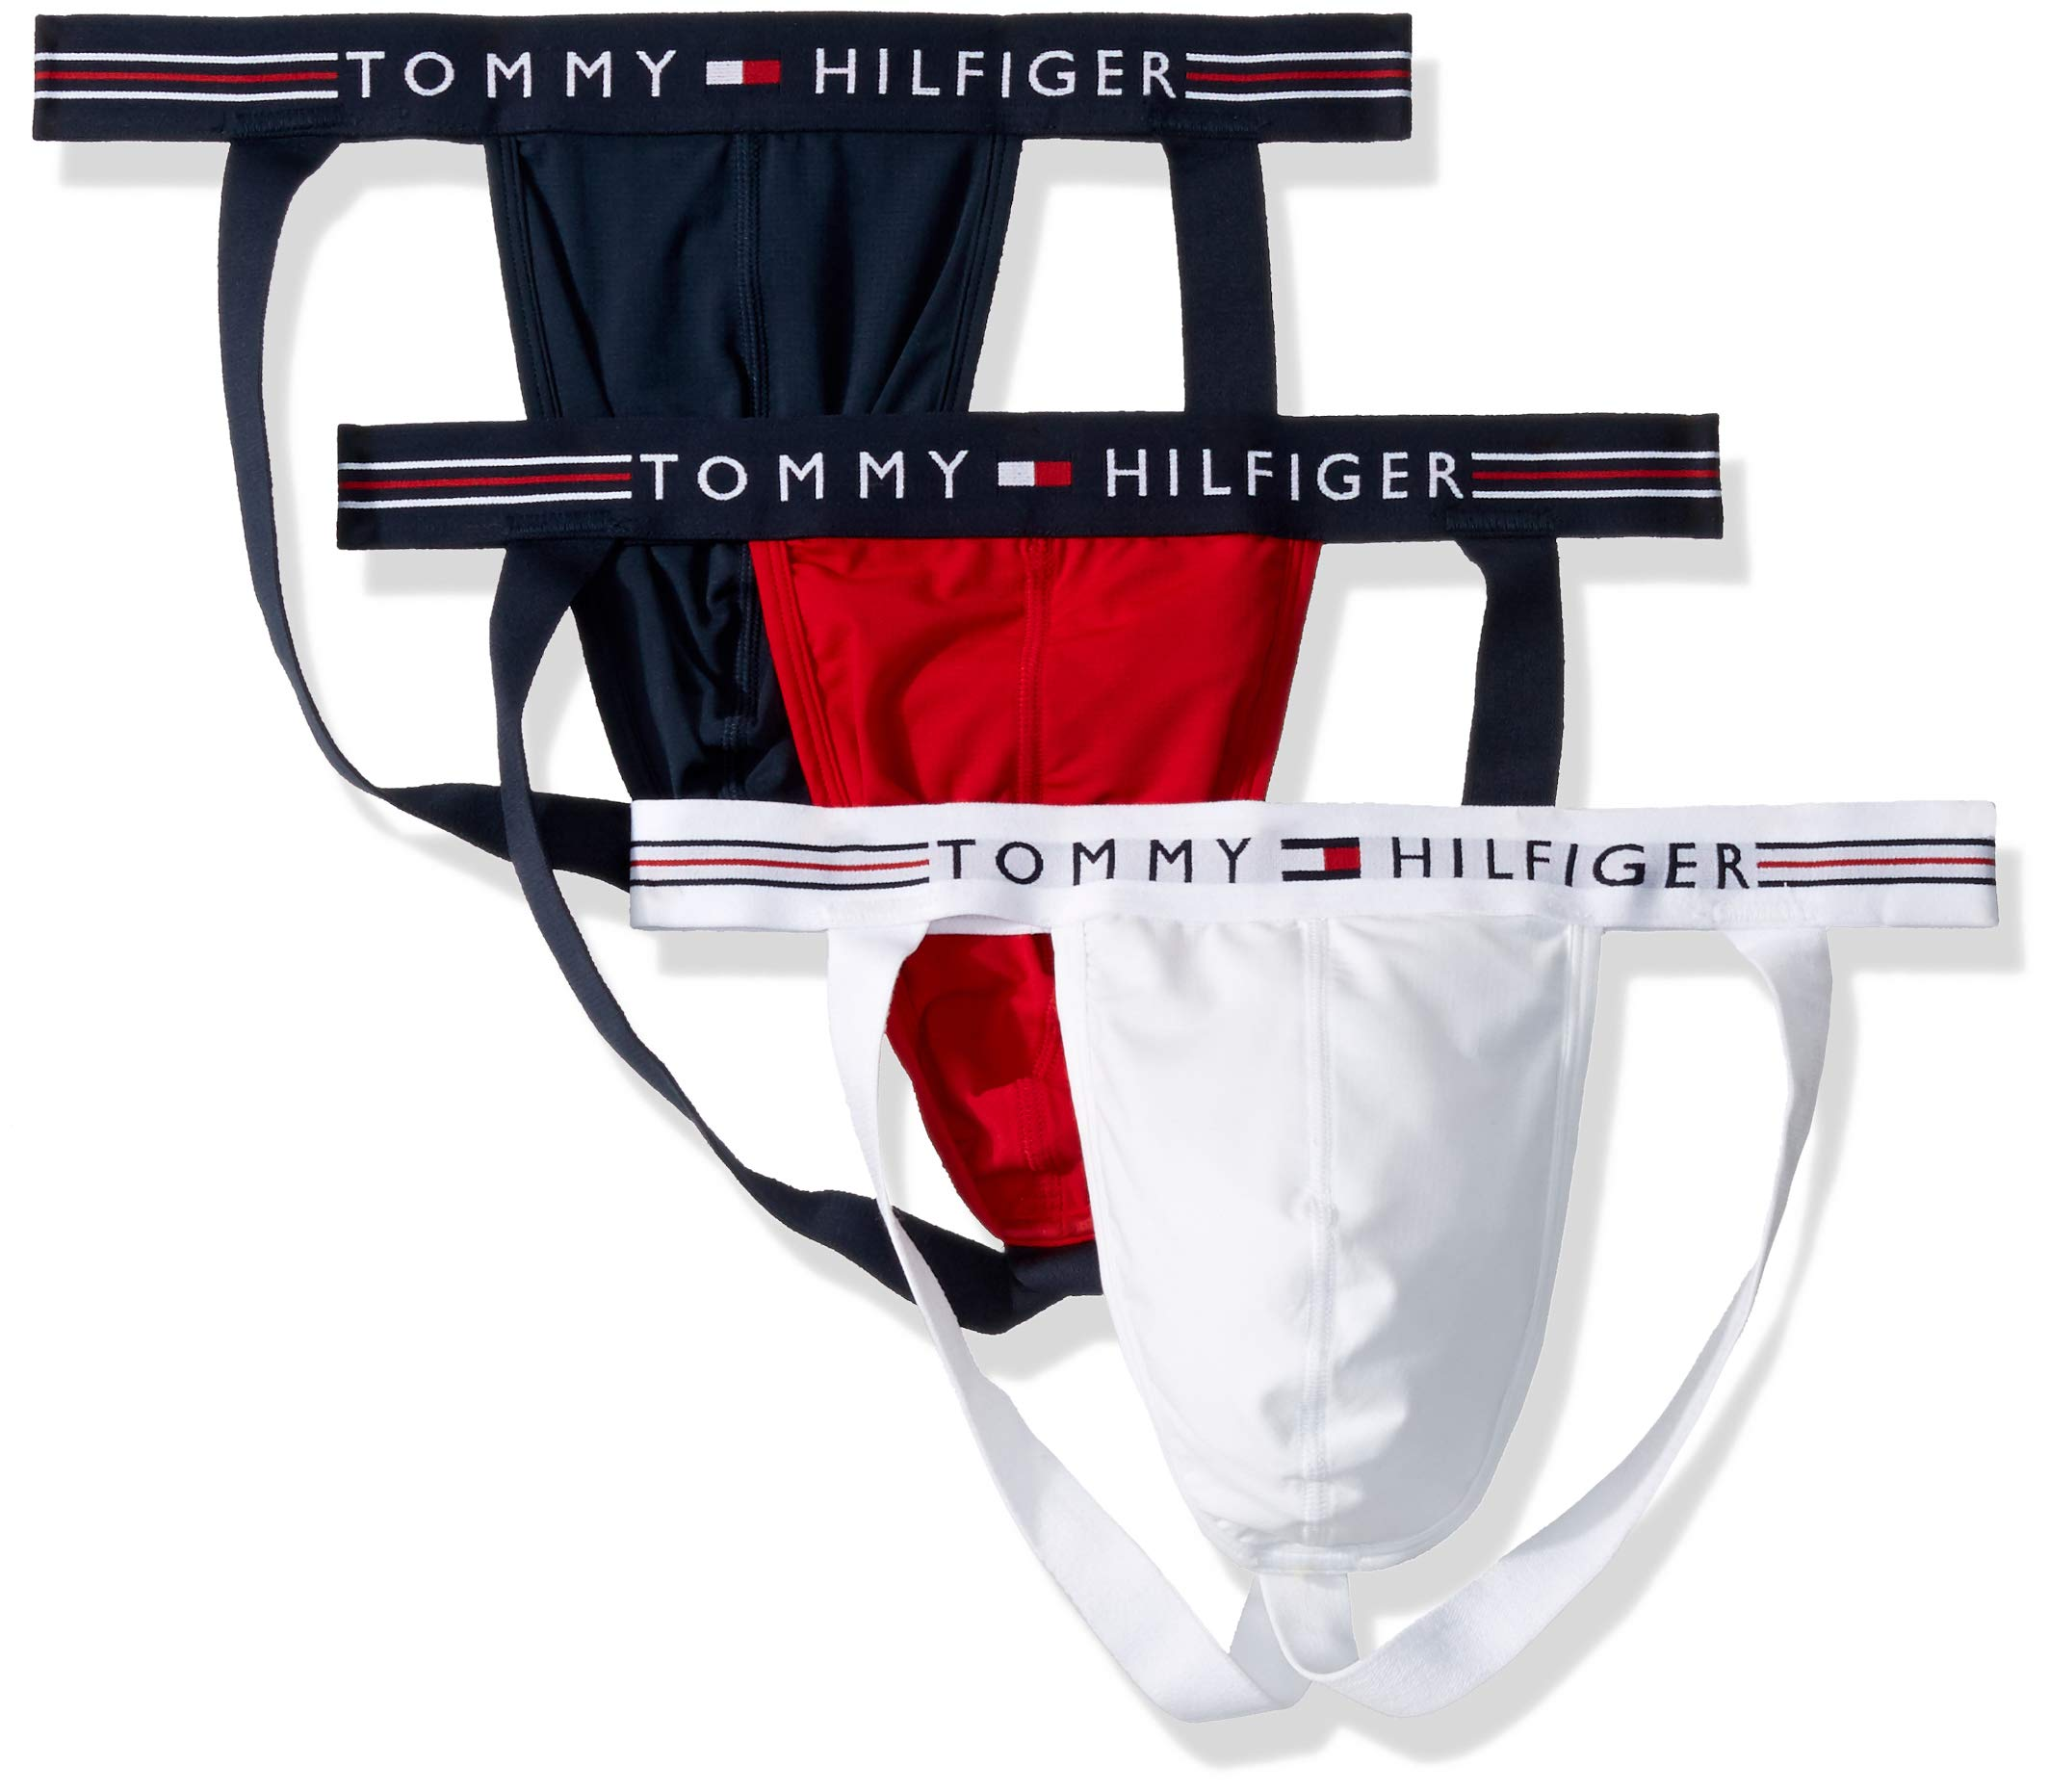 Tommy Hilfiger Men's Underwear Stretch Pro Multipack Jock Straps, Mahogany (Multi 3 Pack), L by Tommy Hilfiger